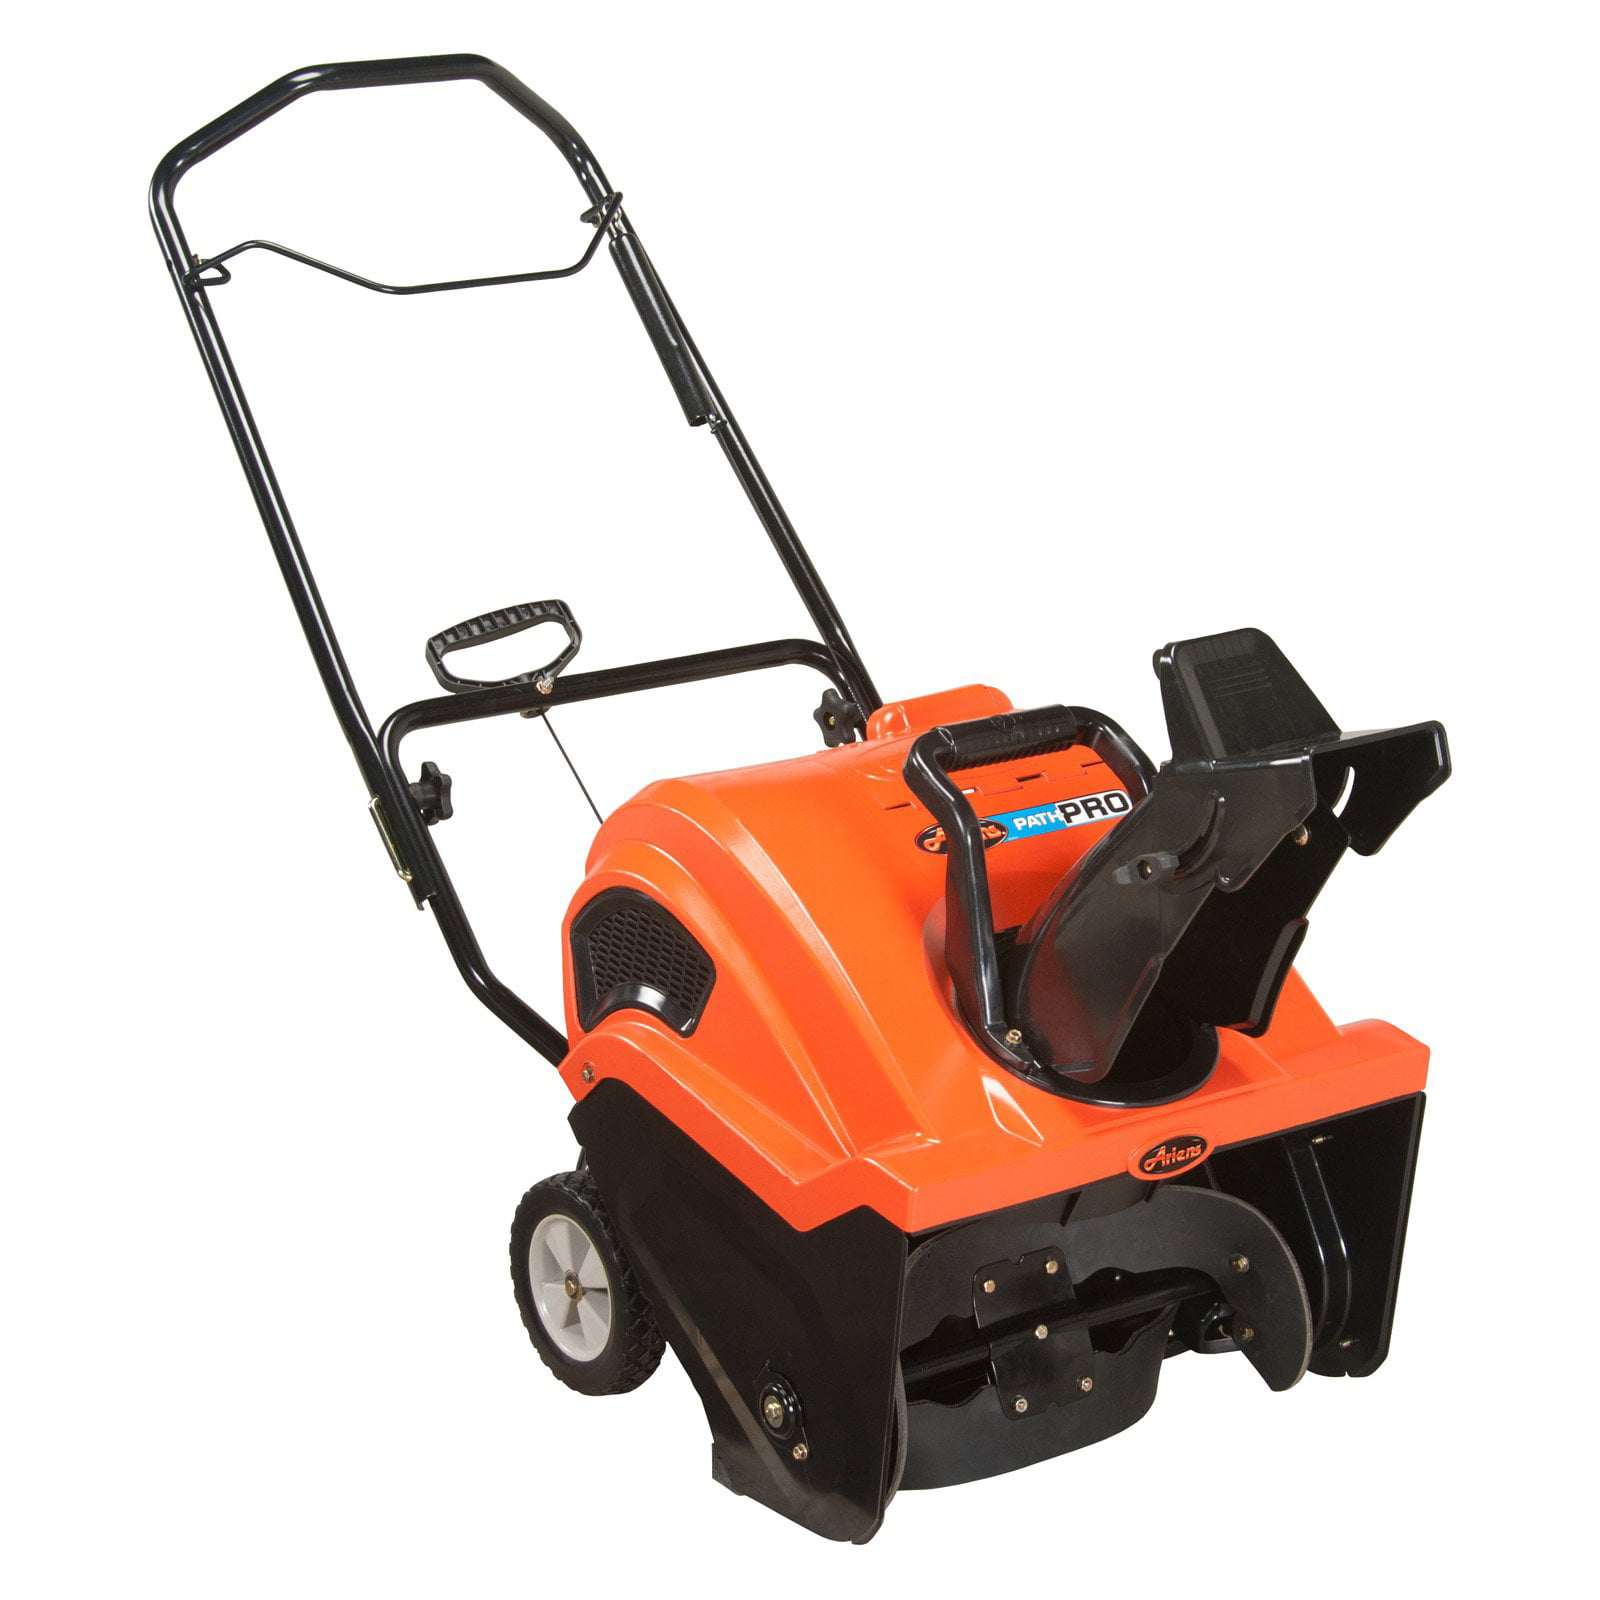 Ariens Path-Pro 21 in.1-Stage Snow Blower by ARIENS COMPANY